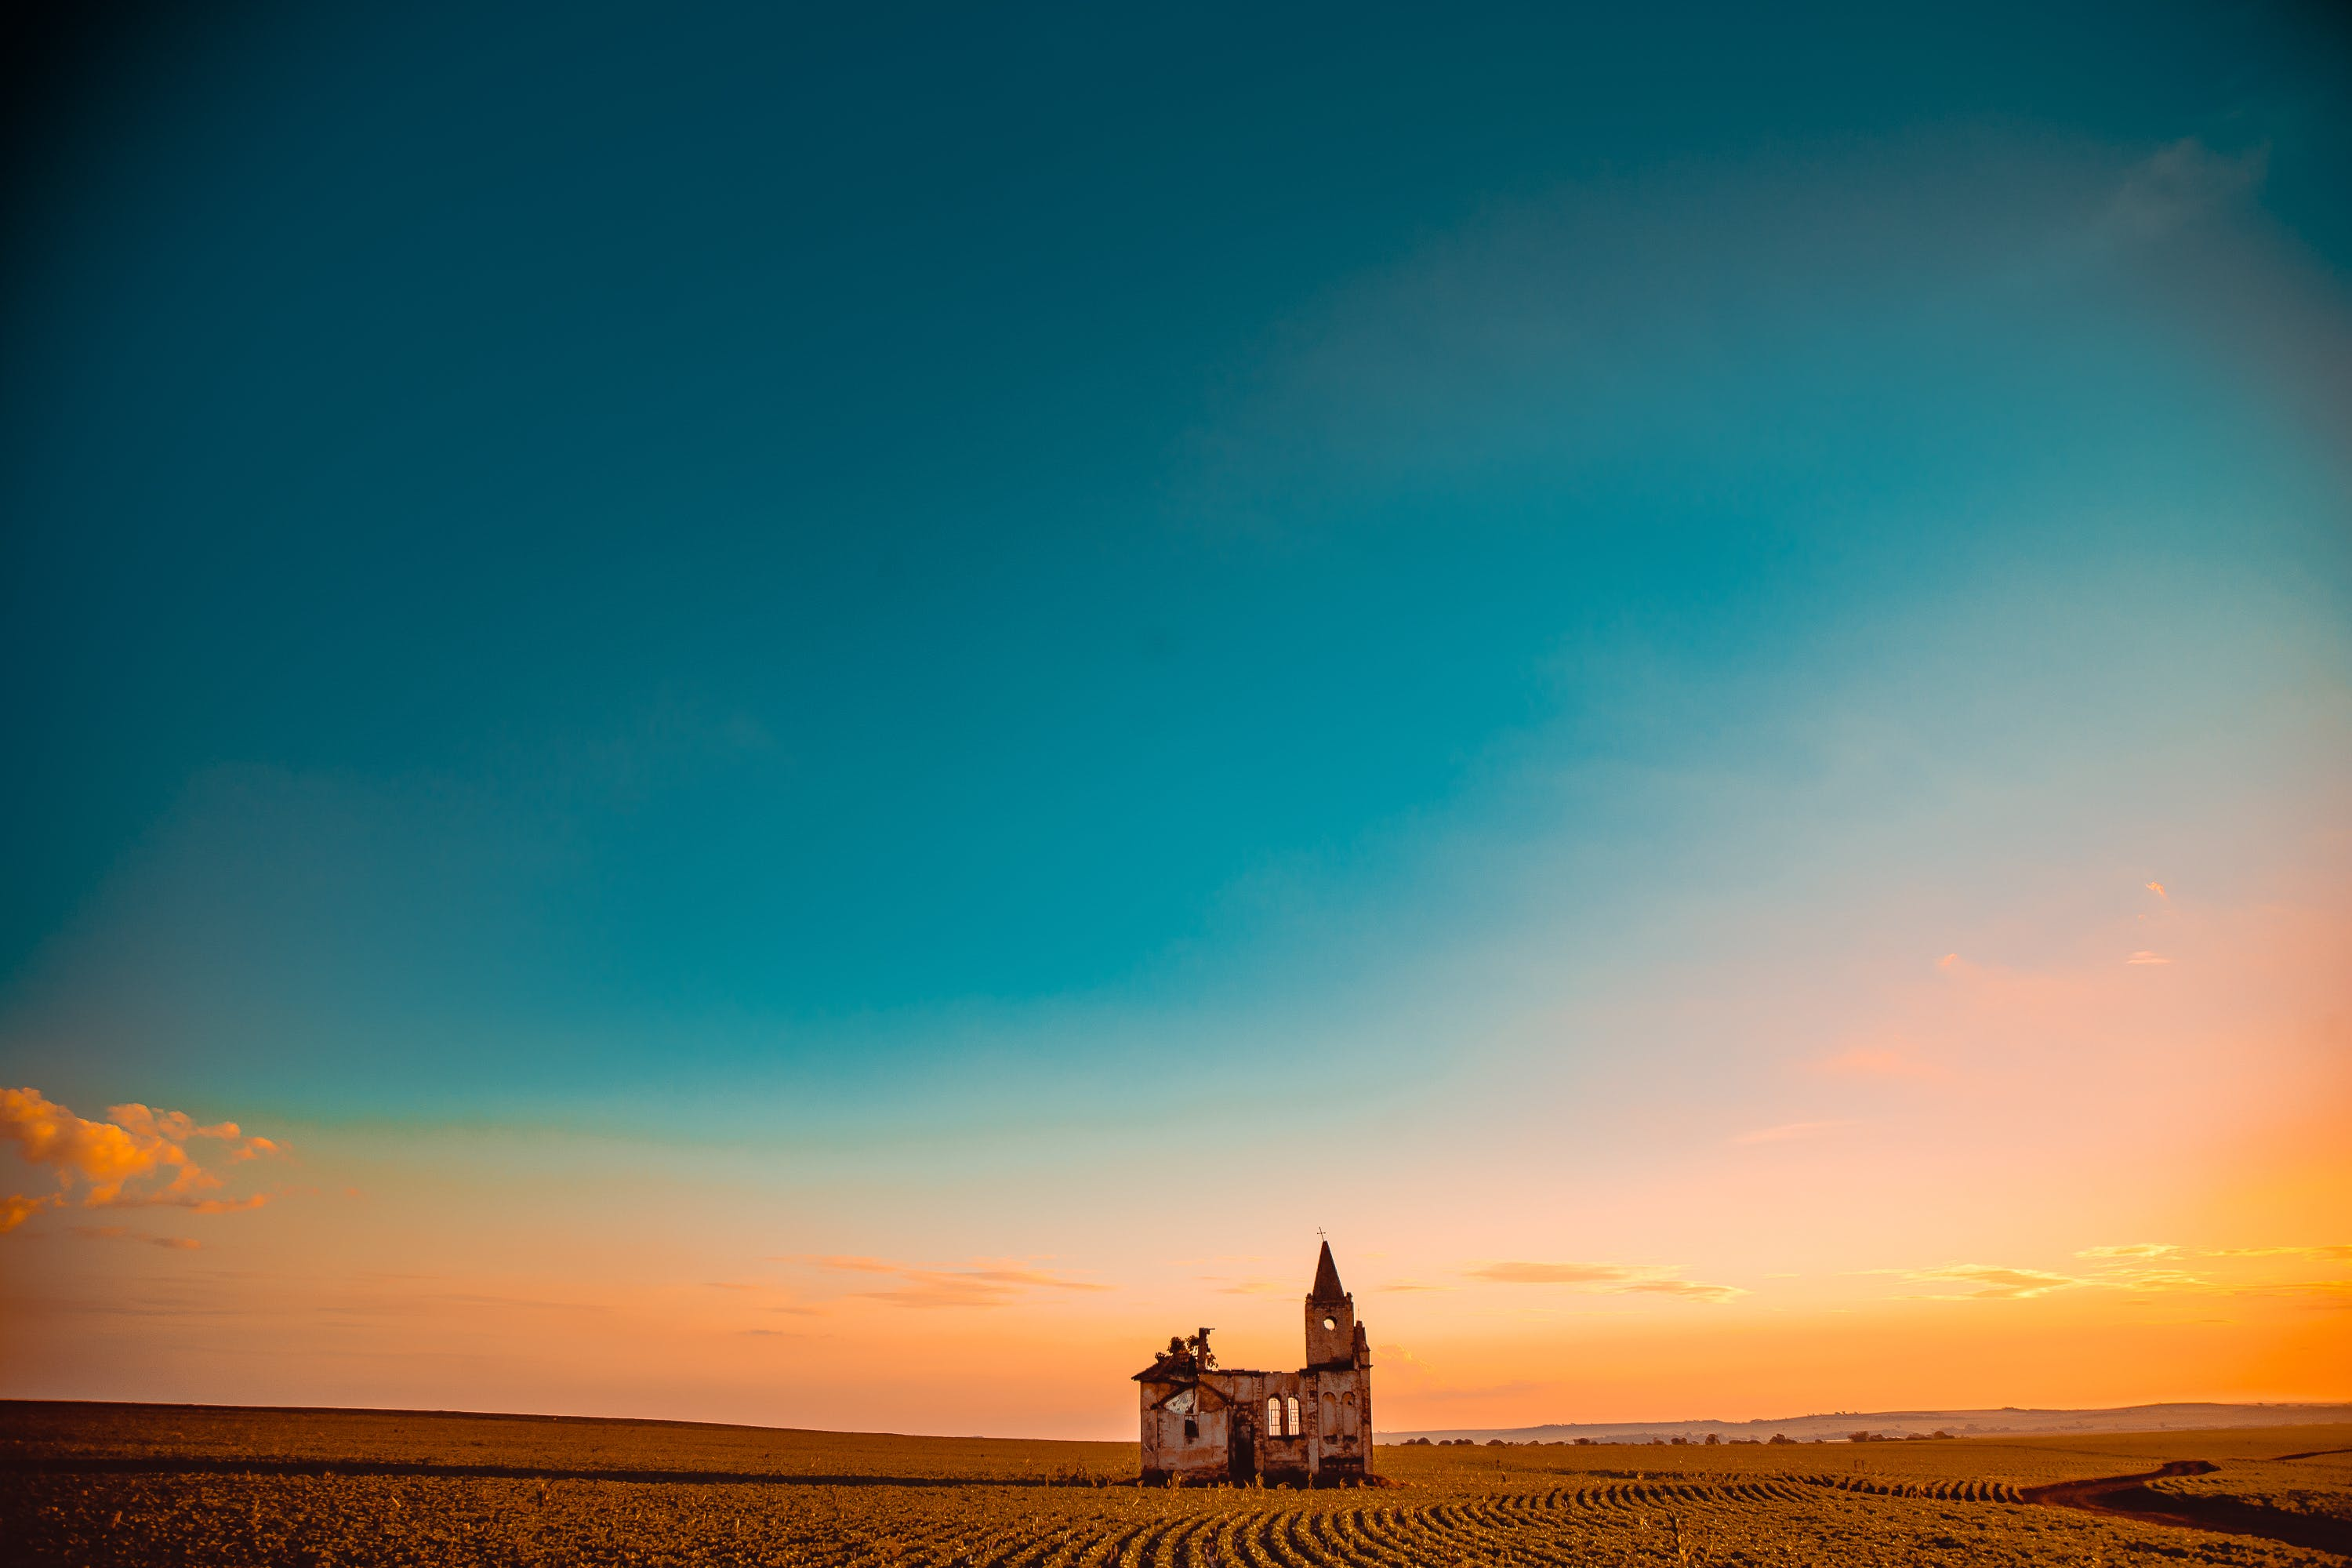 Church In The Middle Of A Field